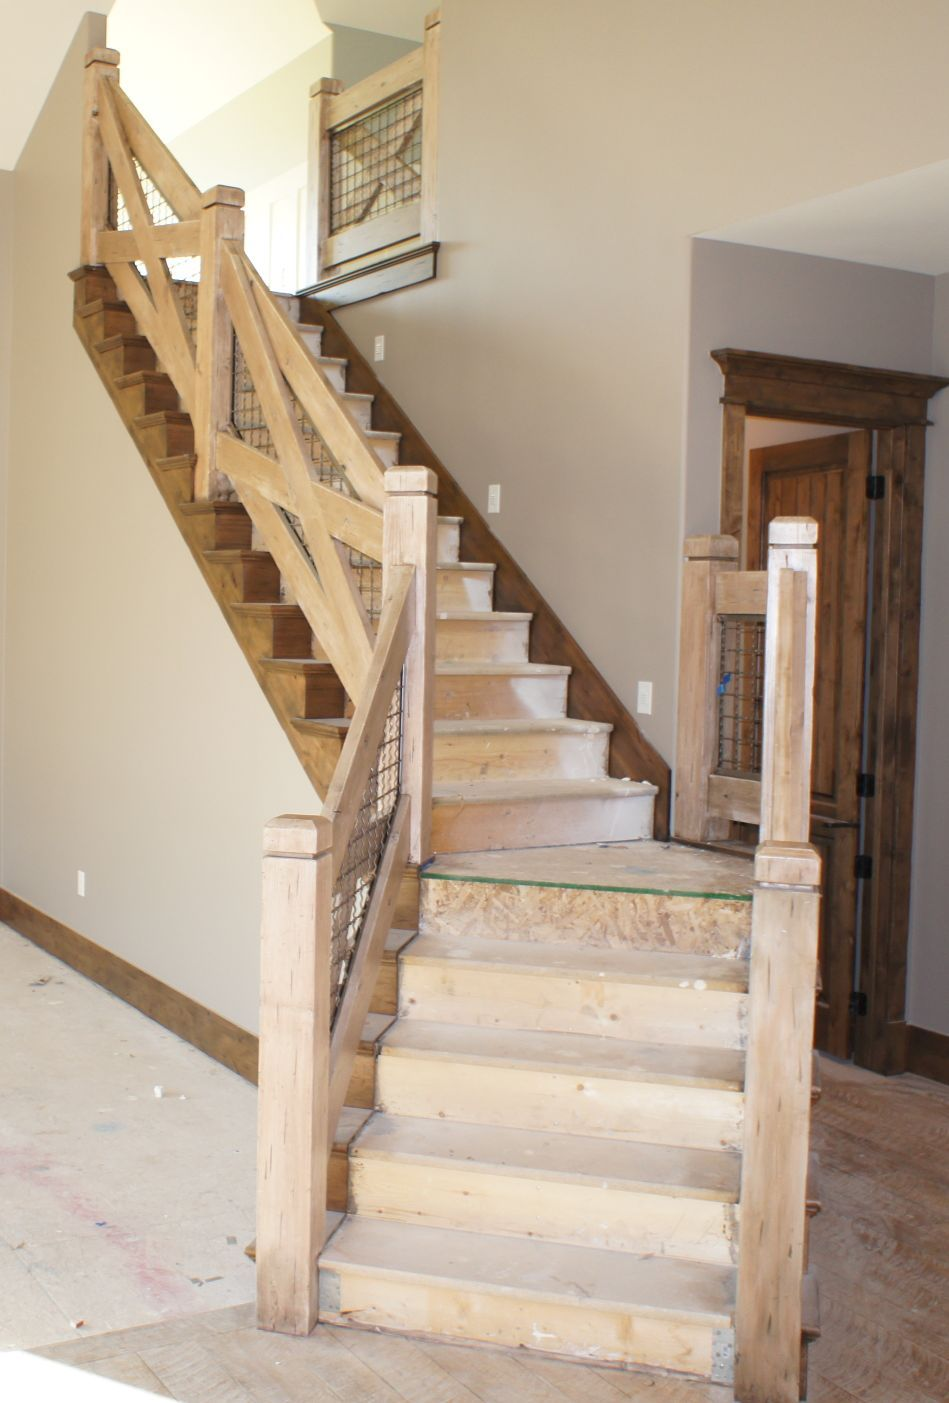 Best Low Cost Stair Railing Ideas 14465 Farmhouse Stairs 400 x 300